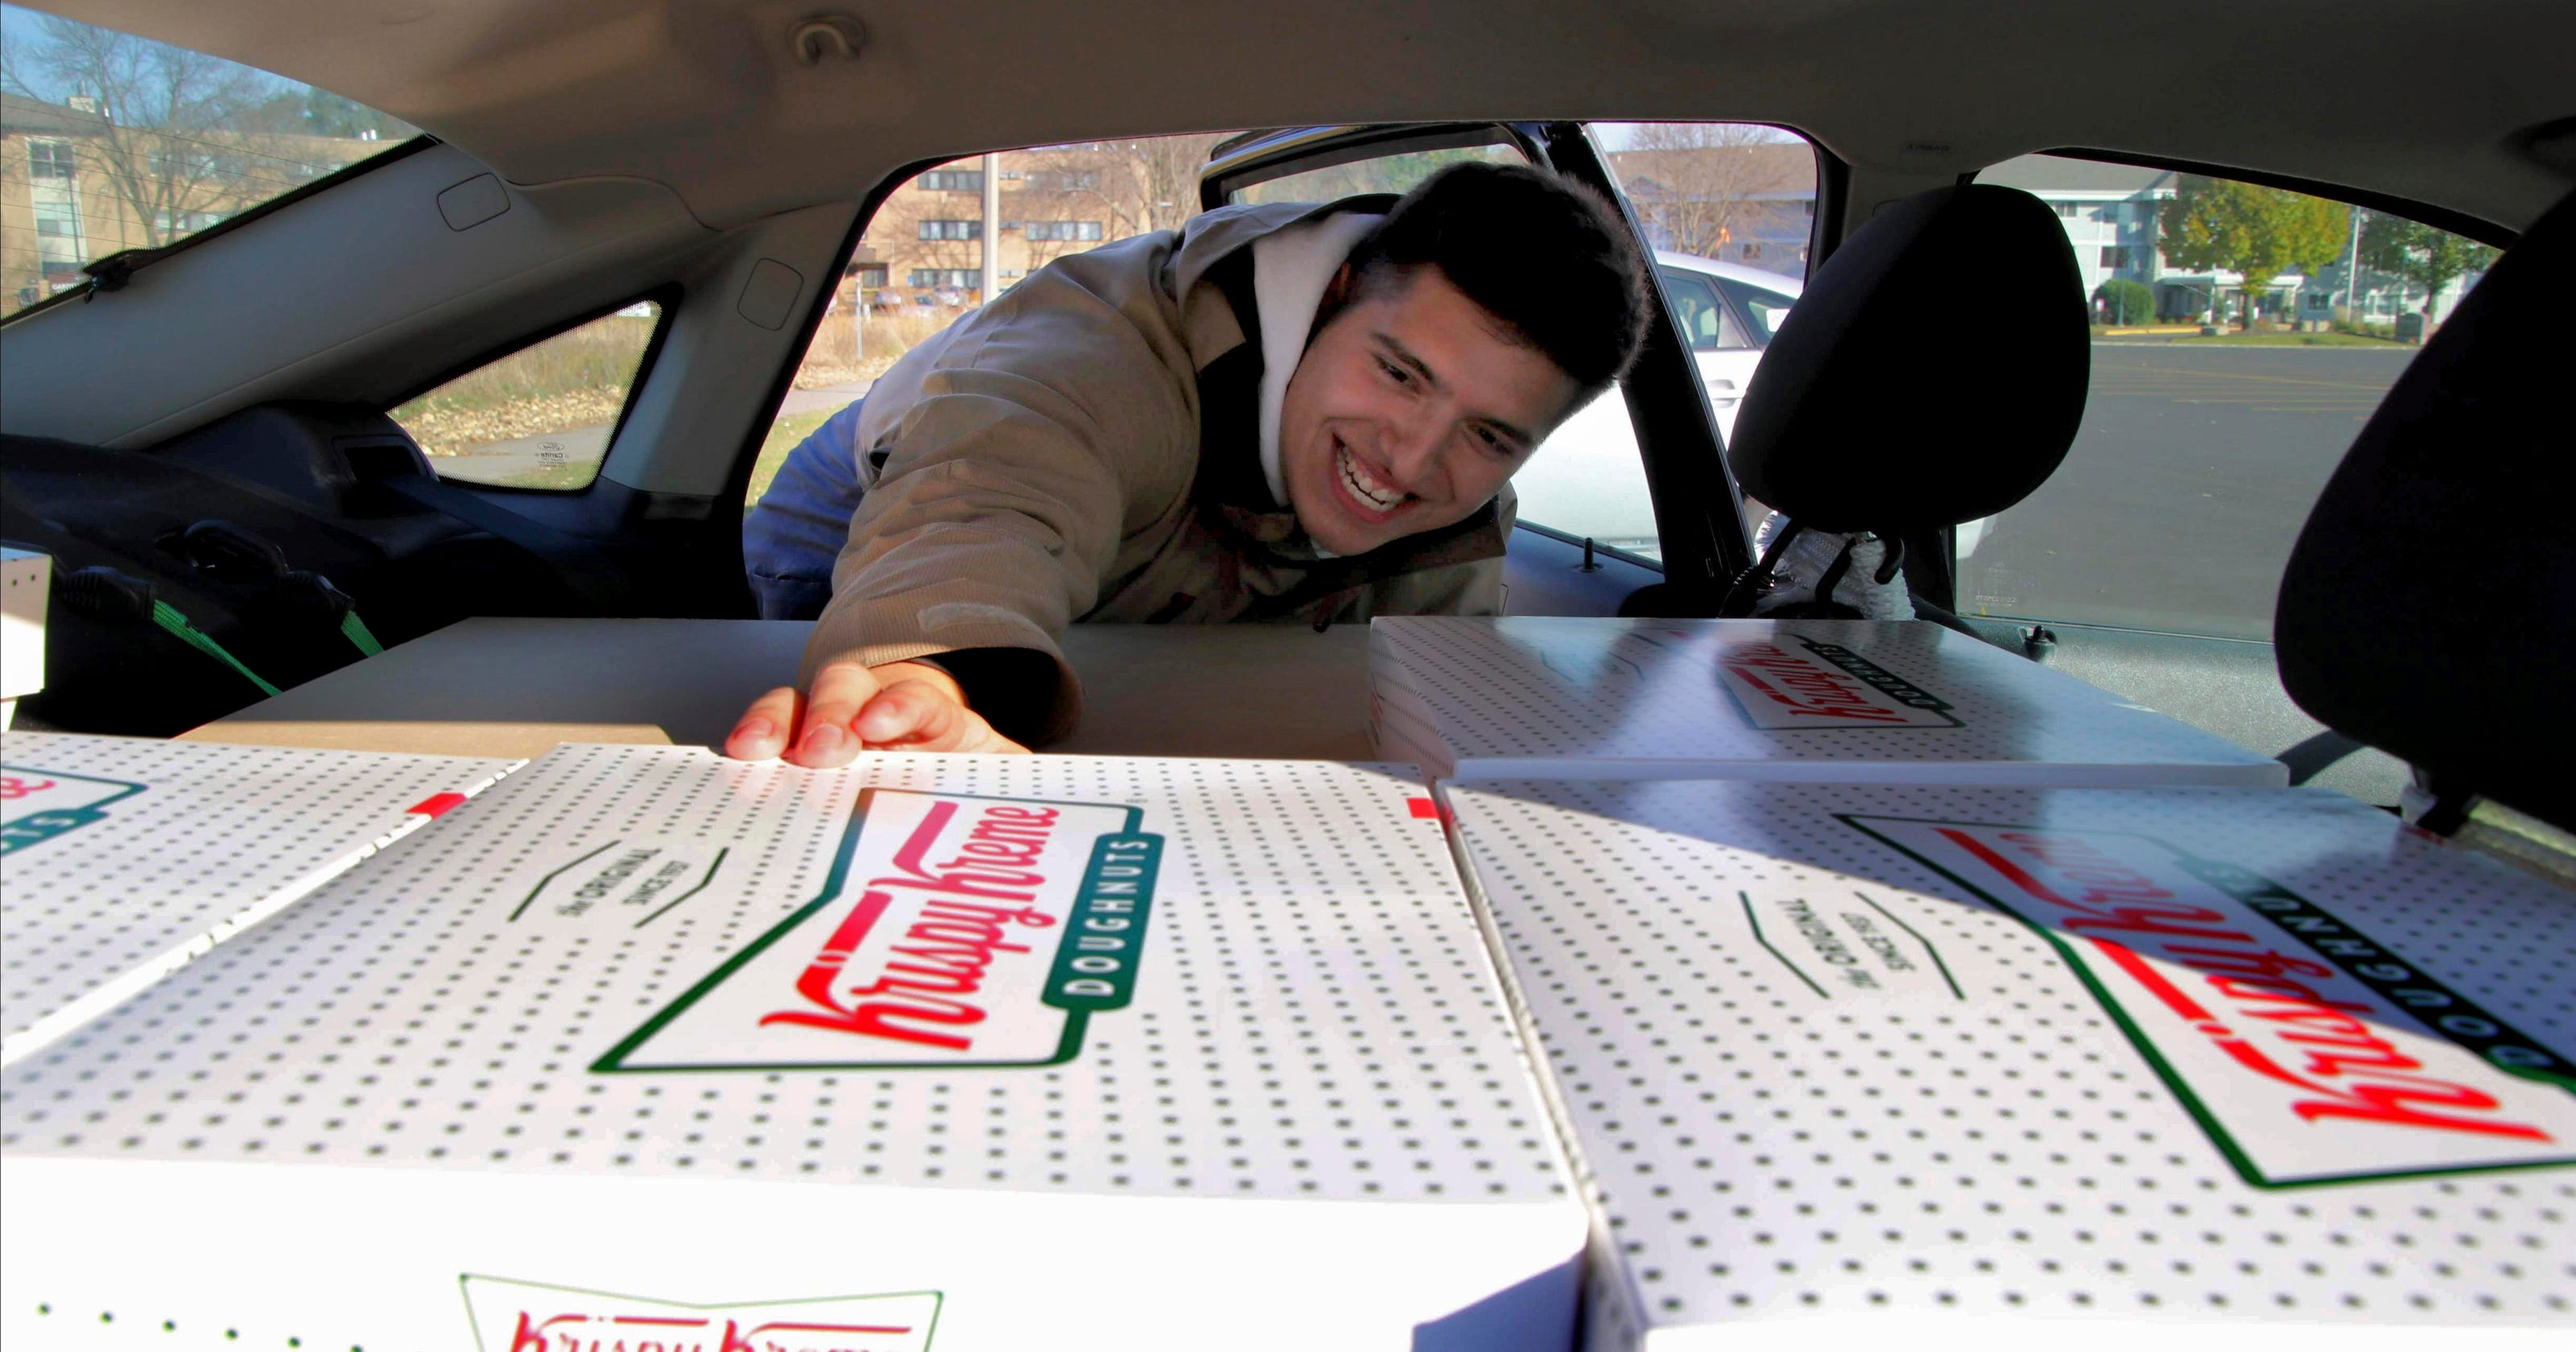 Doughnut hustle not so hot now, 'chalkbus,' Blackbeard's remittance: News from around our 50 states